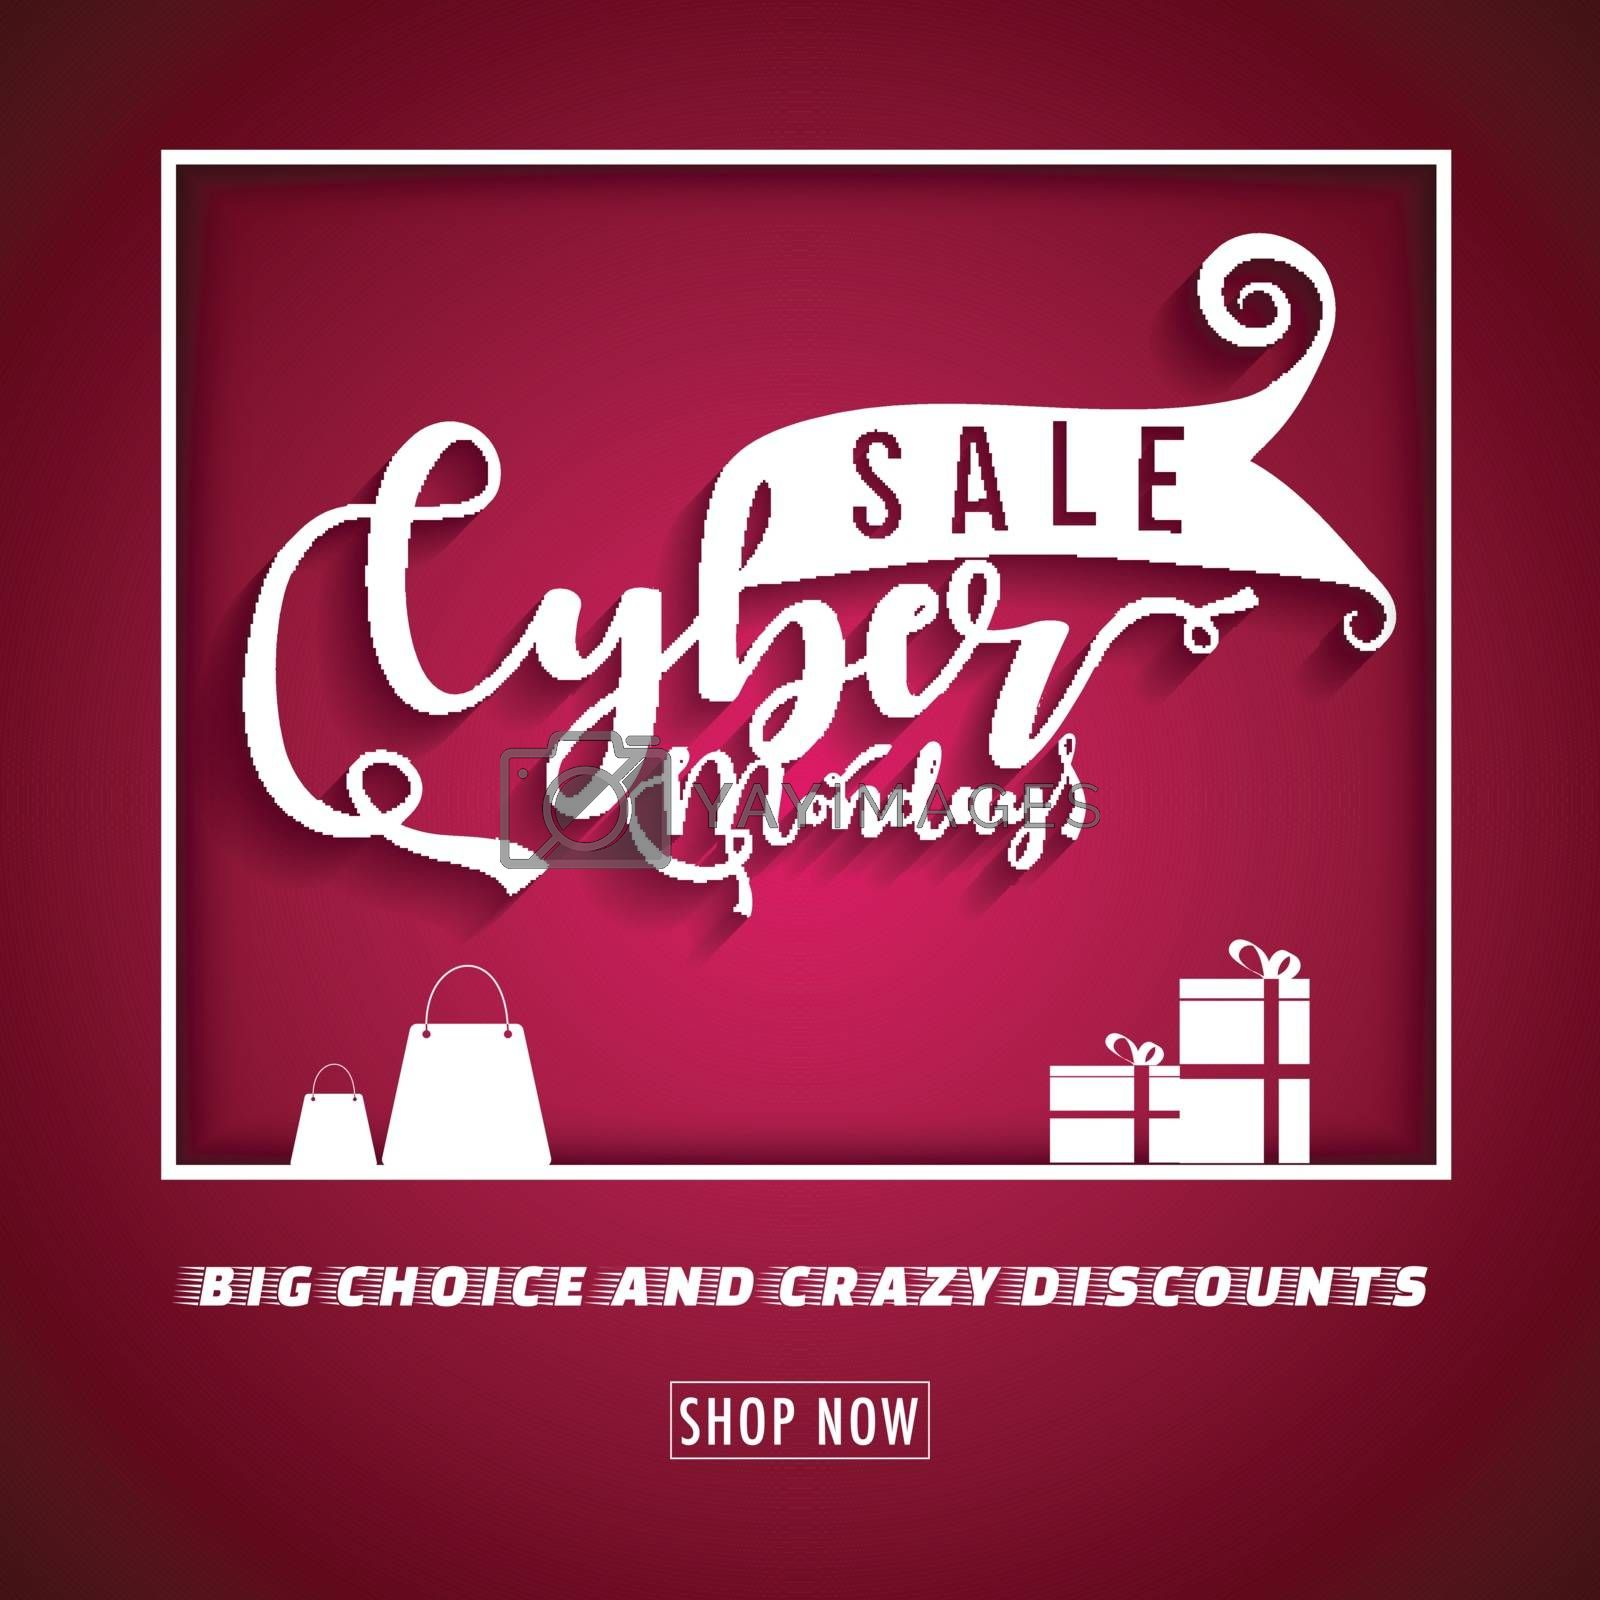 Website template or flyer design with shopping bags and gift boxes on red background for Cyber Monday Sale.